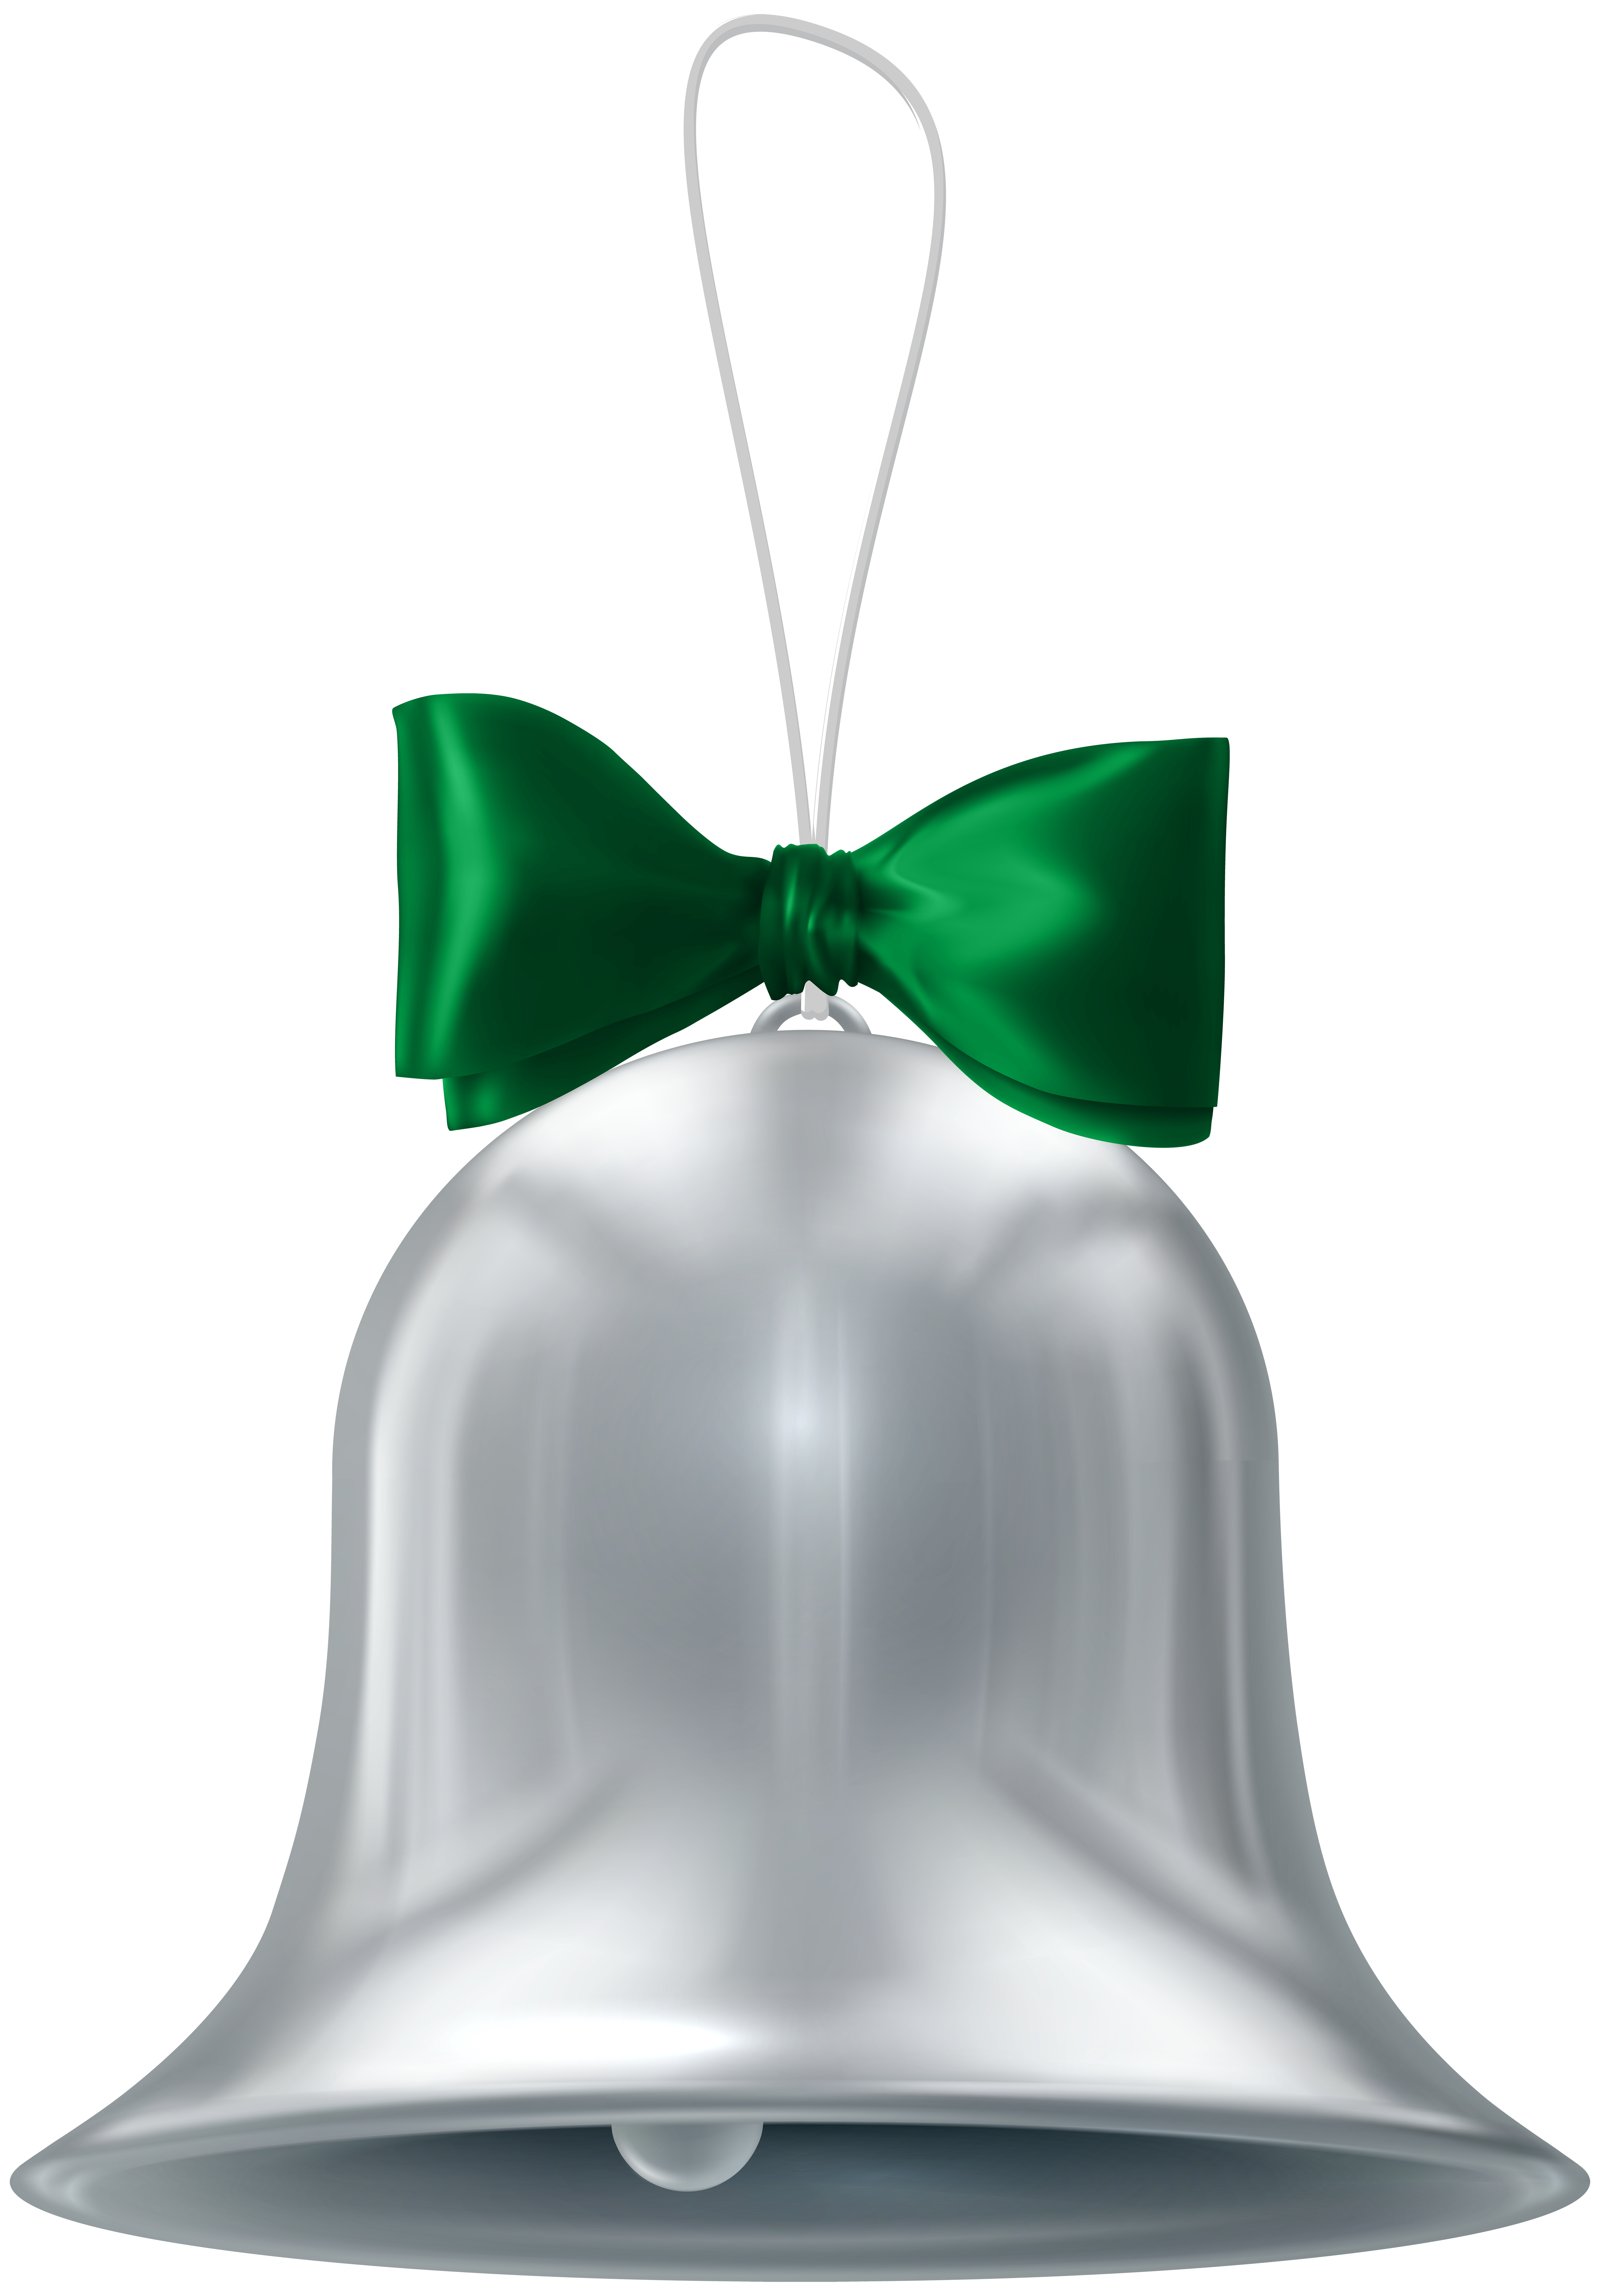 5576x8000 Christmas Silver Bell Transparent Png Clip Artu200b Gallery